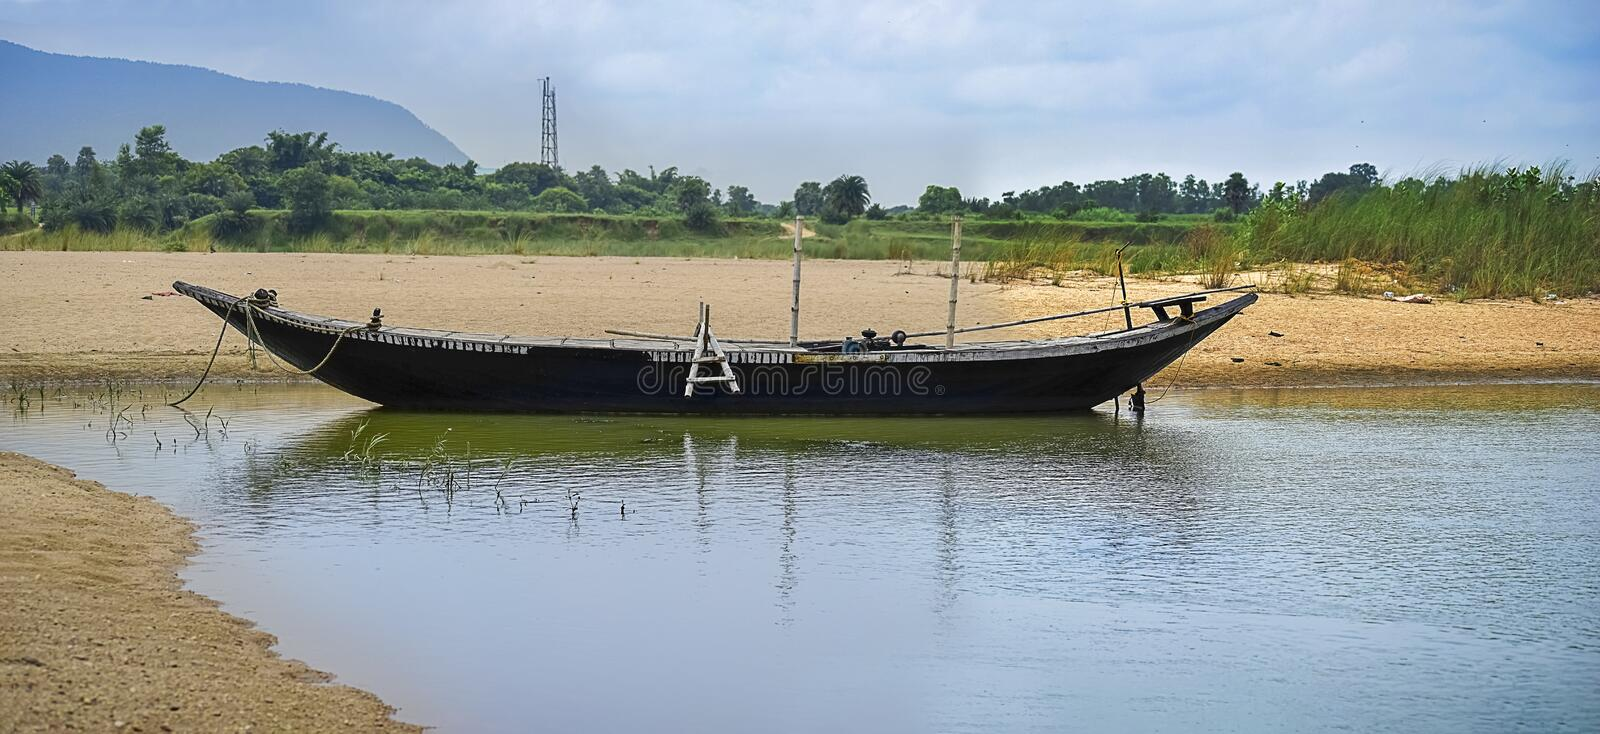 Small boat resing near the bank of the river water under the Sun in the morning time. Asansol,India, 2019. Landscape of stock image